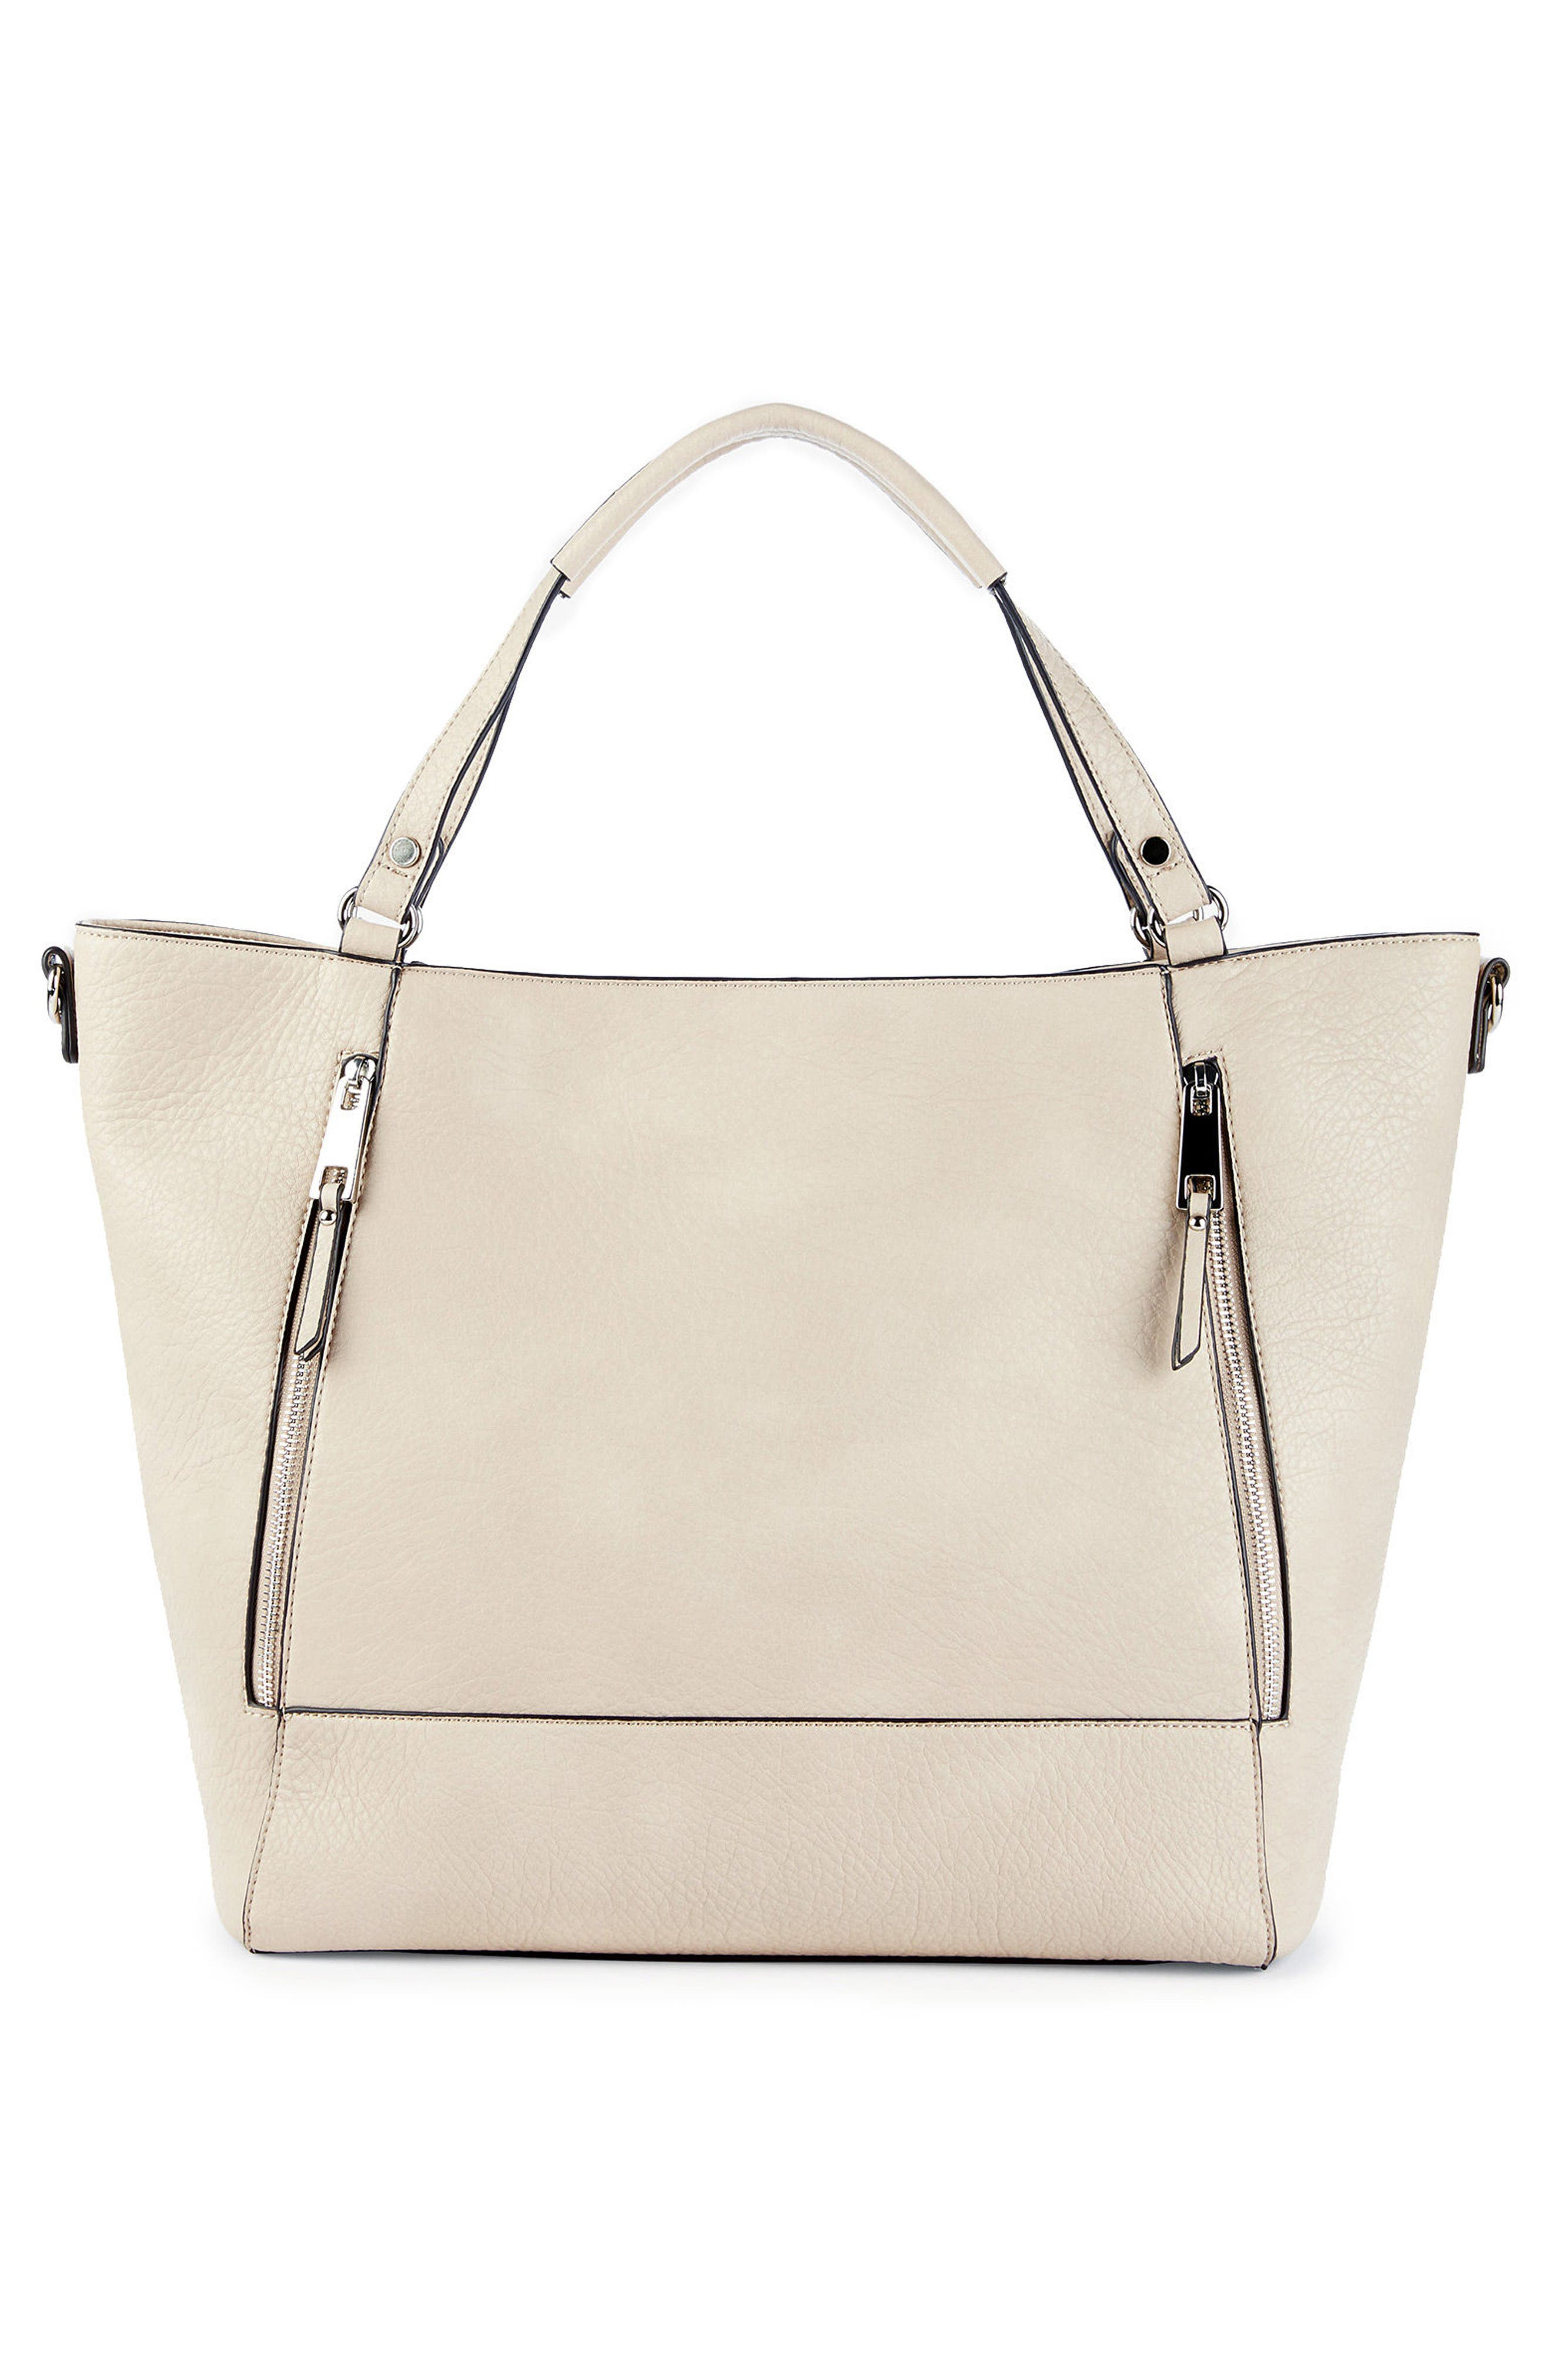 Nera Faux Leather Tote,                             Main thumbnail 1, color,                             Sandshell